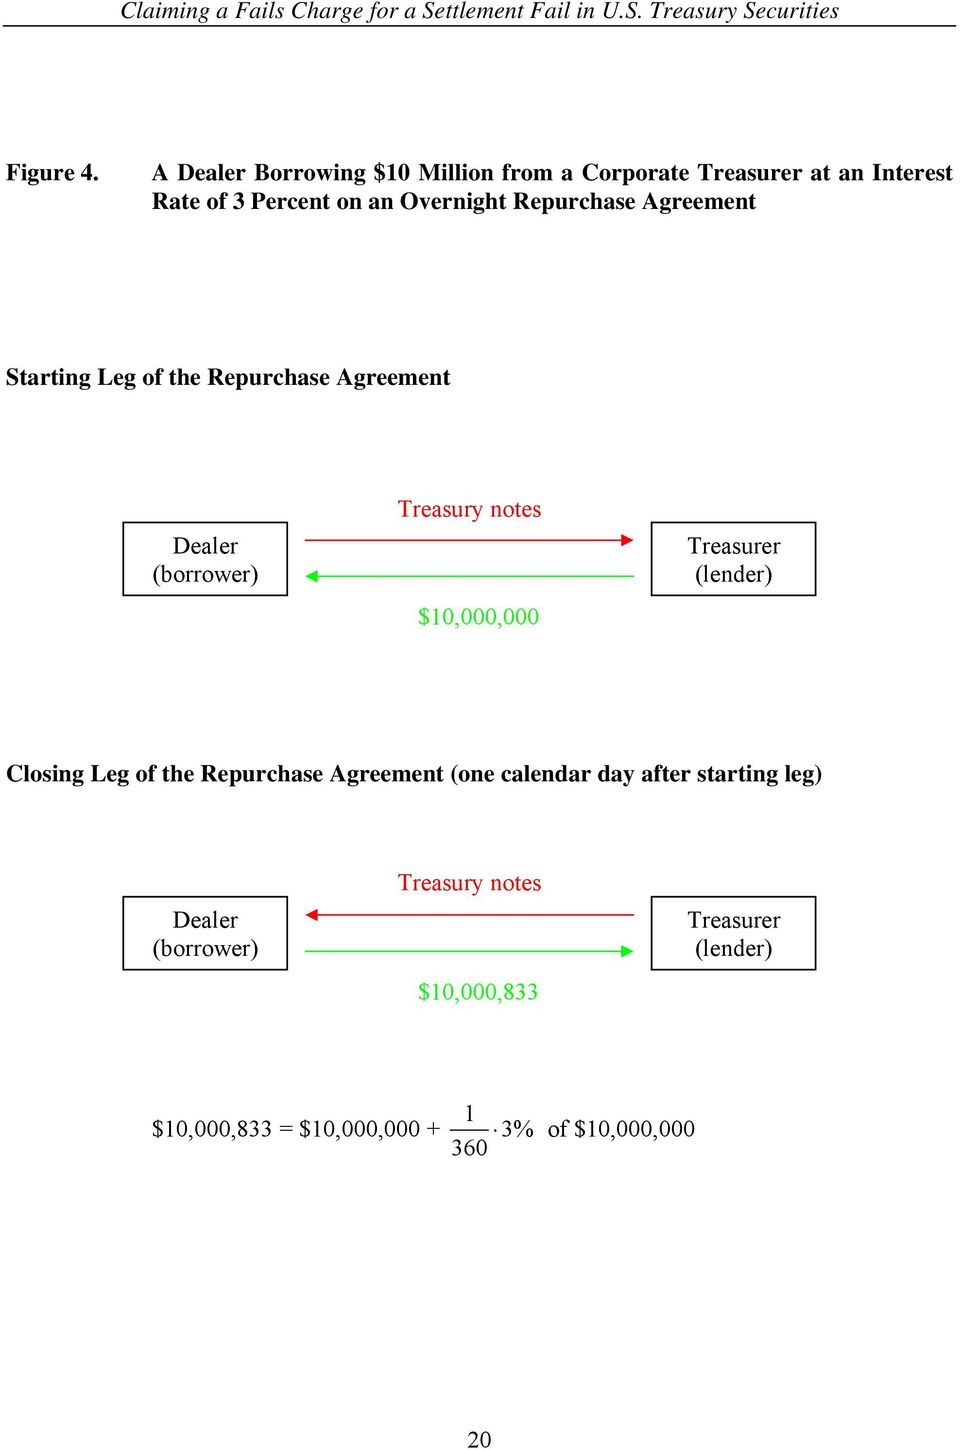 Repurchase Agreement Starting Leg of the Repurchase Agreement Dealer (borrower) Treasury notes $10,000,000